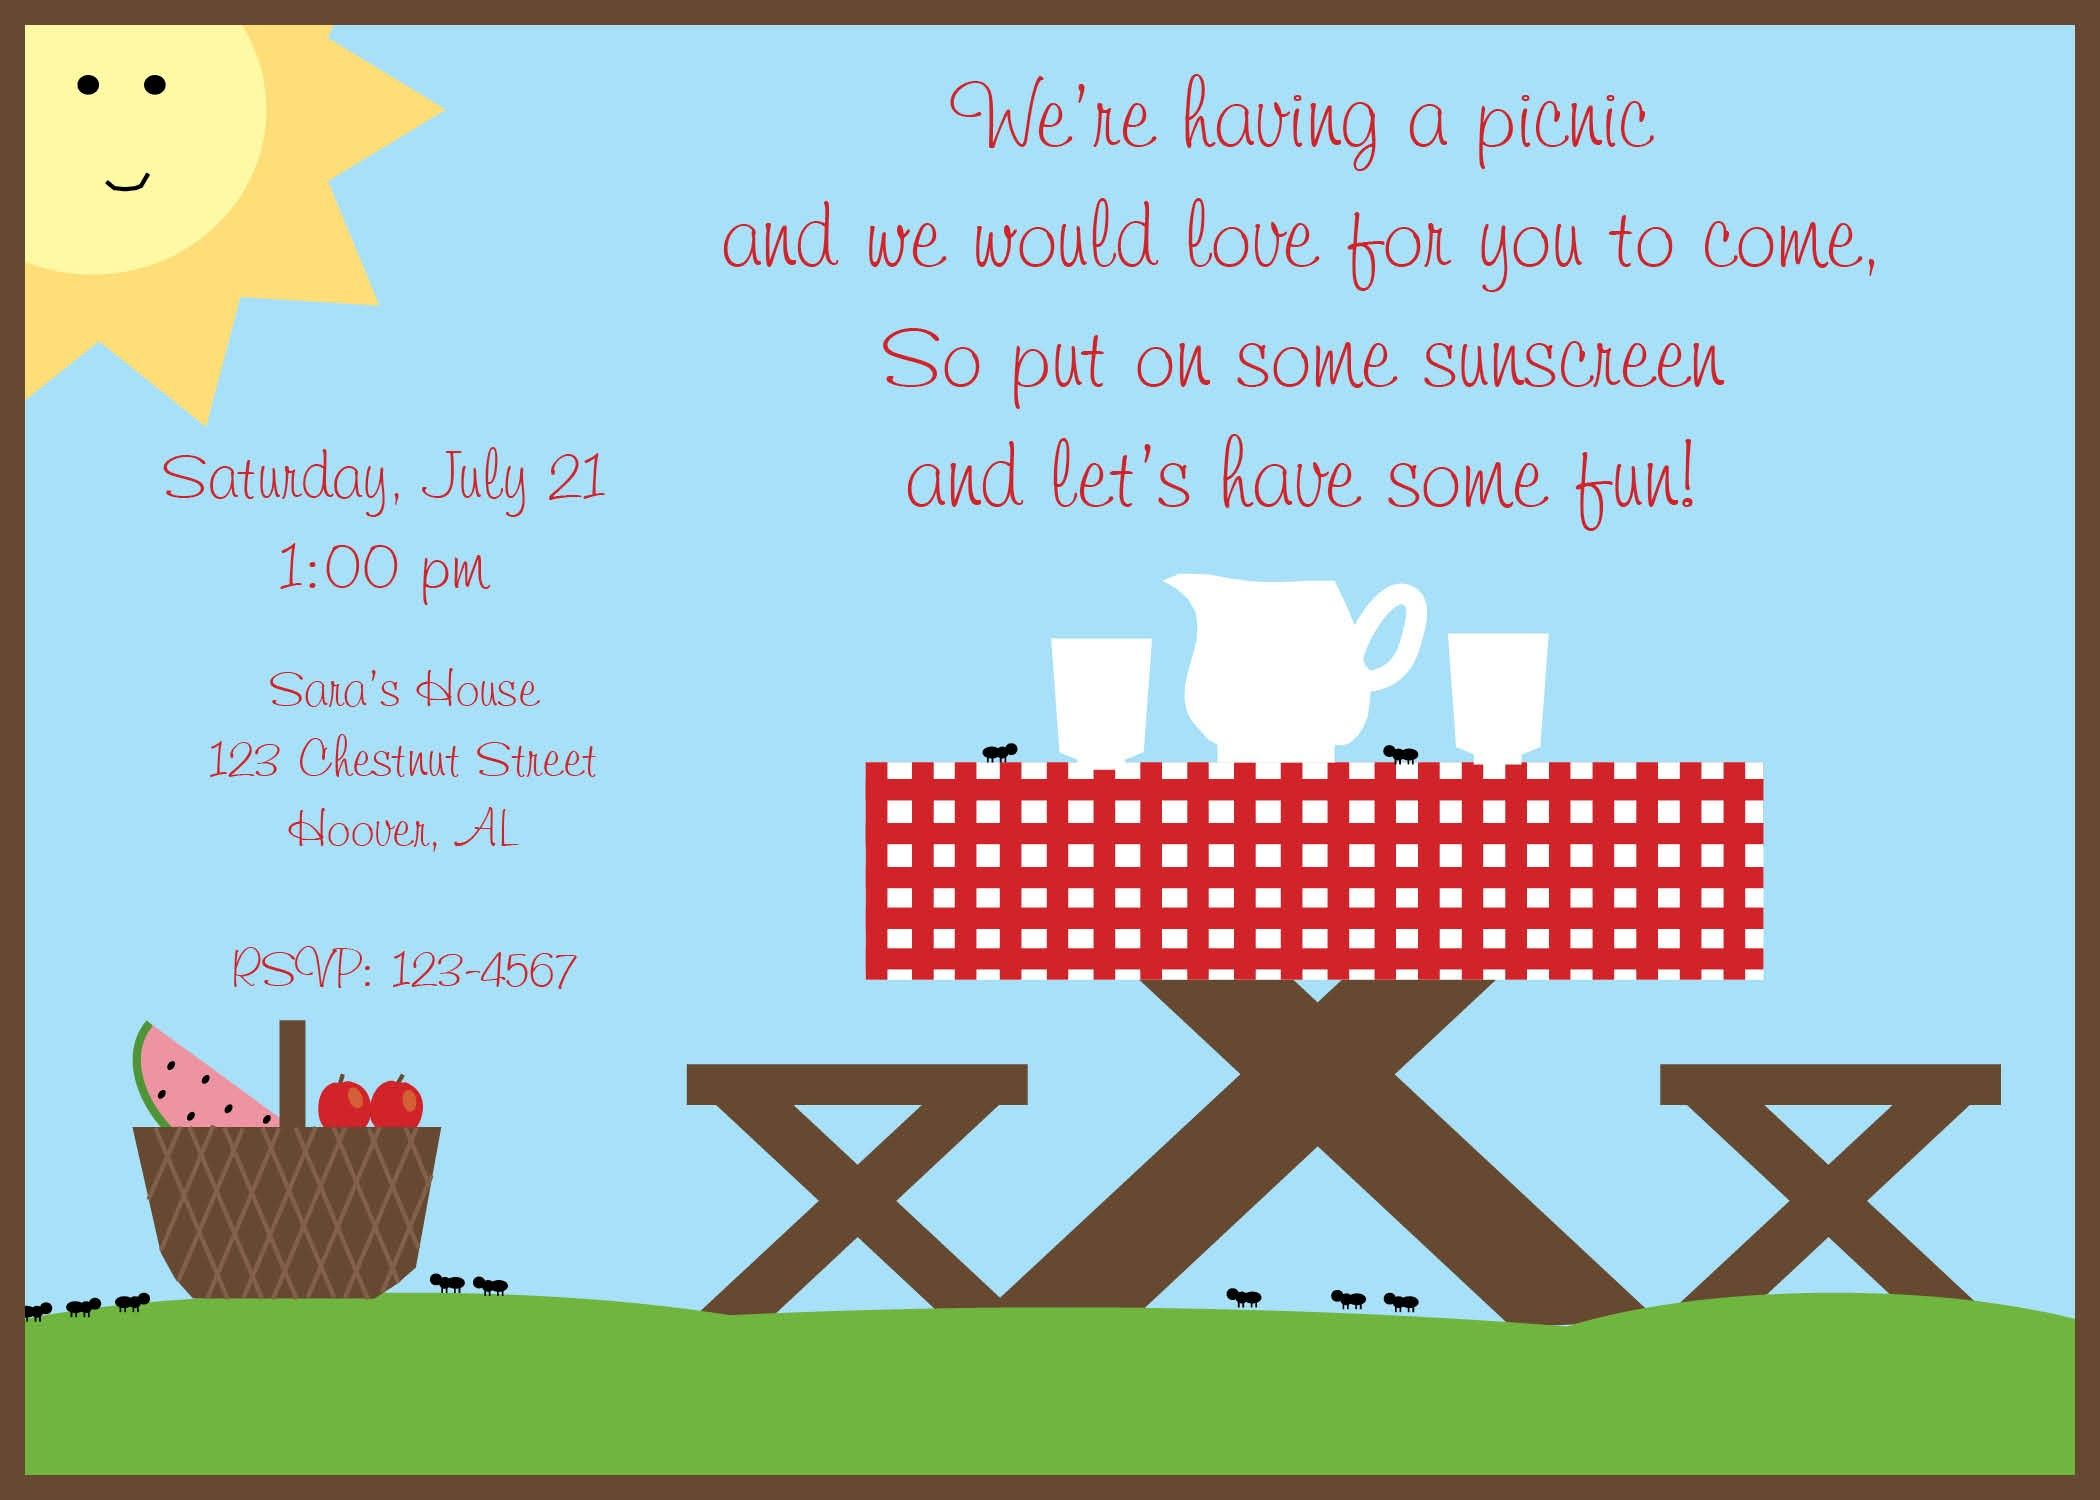 Summer Picnic Invitations Templates  My Style